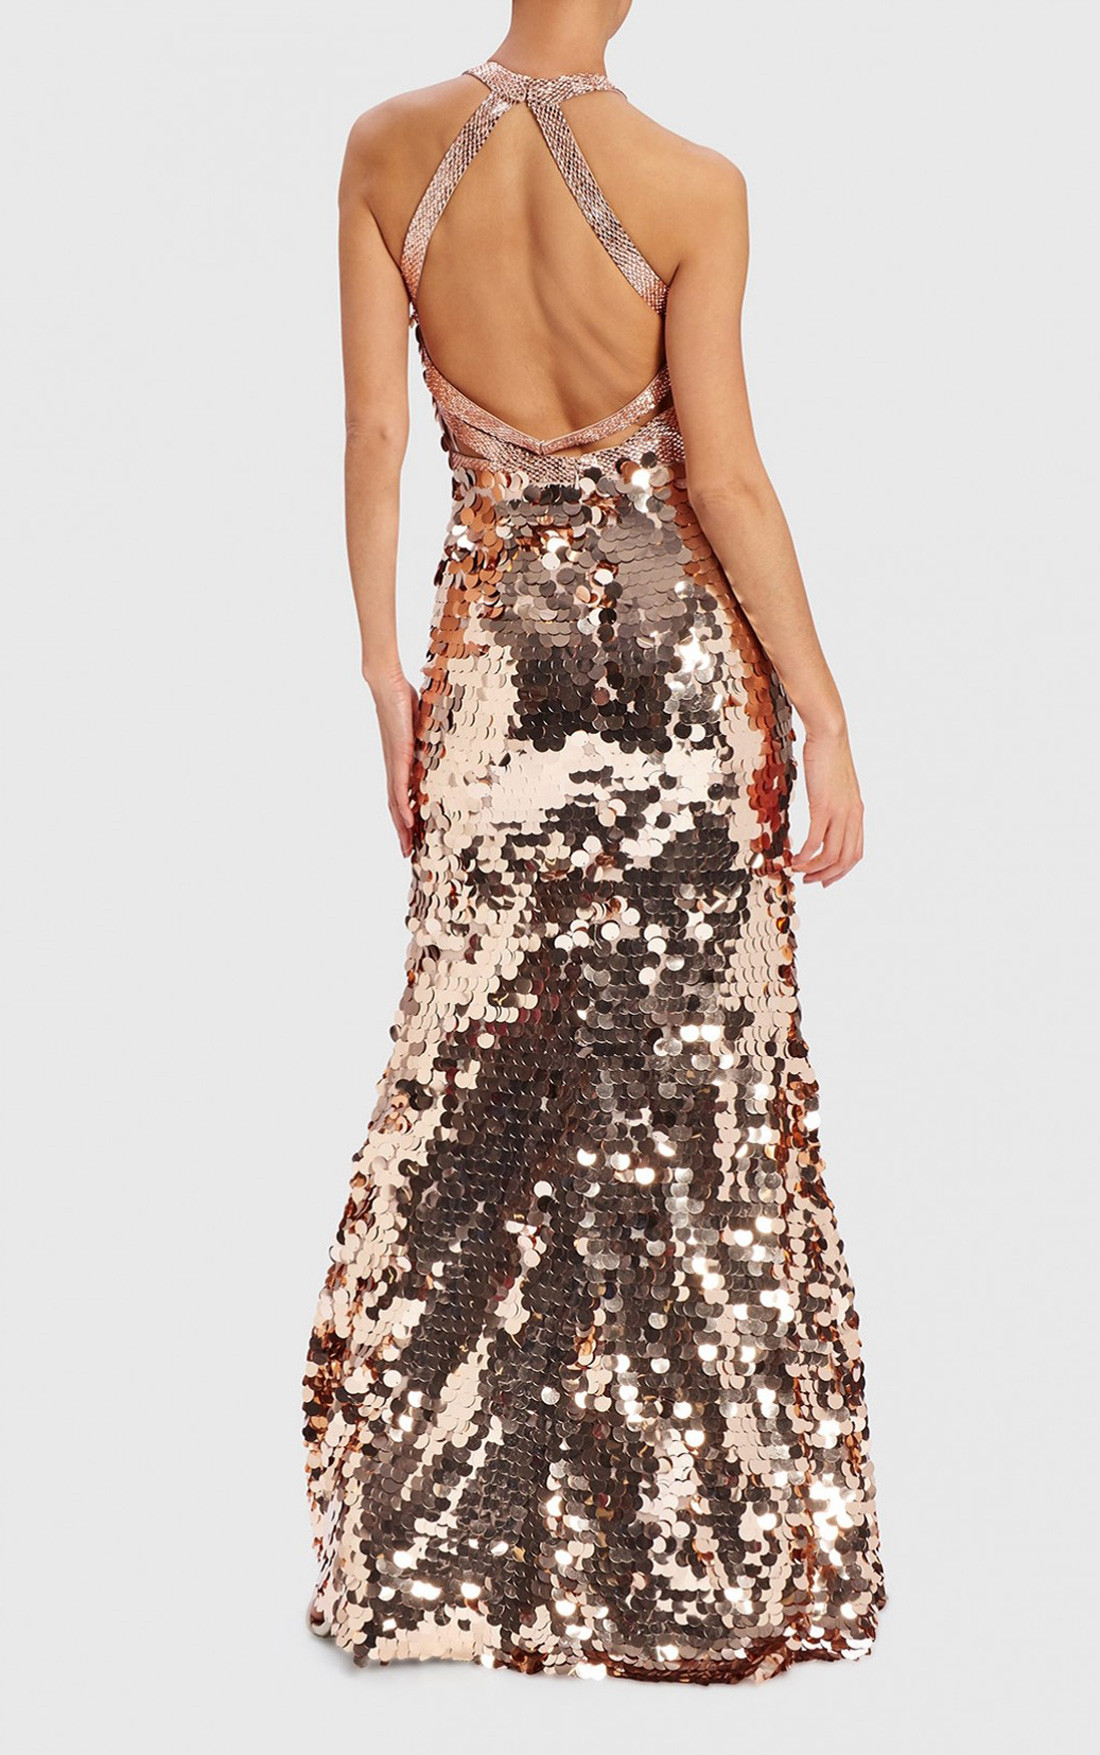 Forever Unique - Masey Rose Gold Sequinned Backless Evening Gown (WF1901)